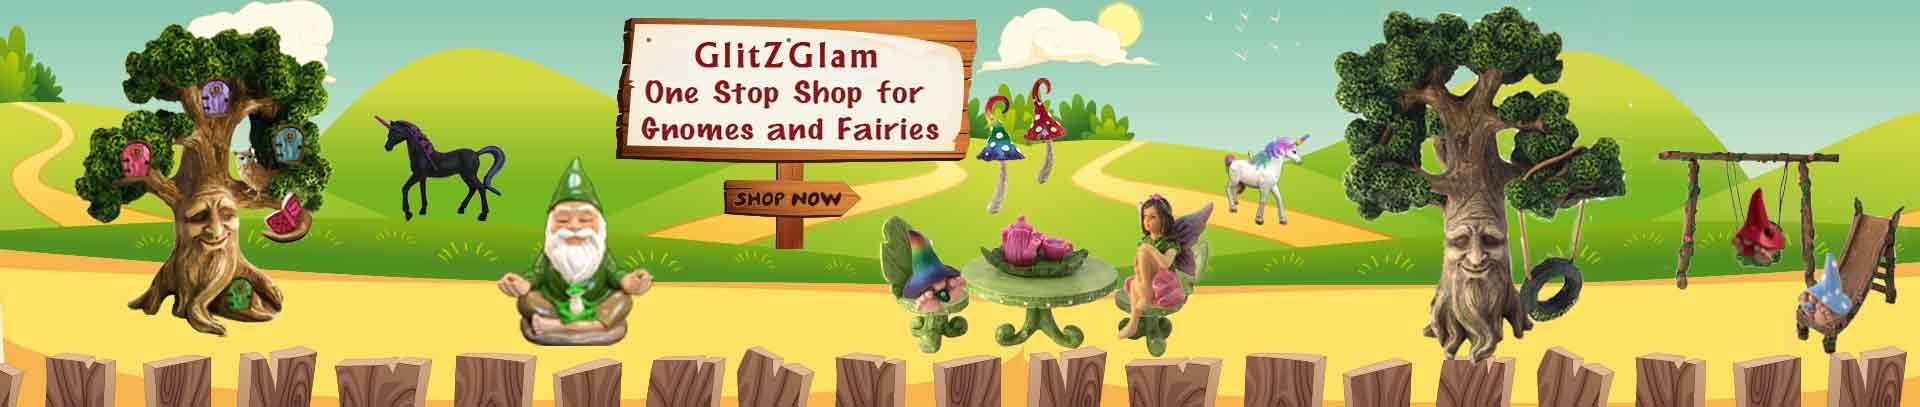 GlitZGlam Miniature Baby Gnomes 4 Pack Collection – The Baby Gnomes for The Fairy Garden That Garden Fairies Love by GlitZGlam (Image #5)